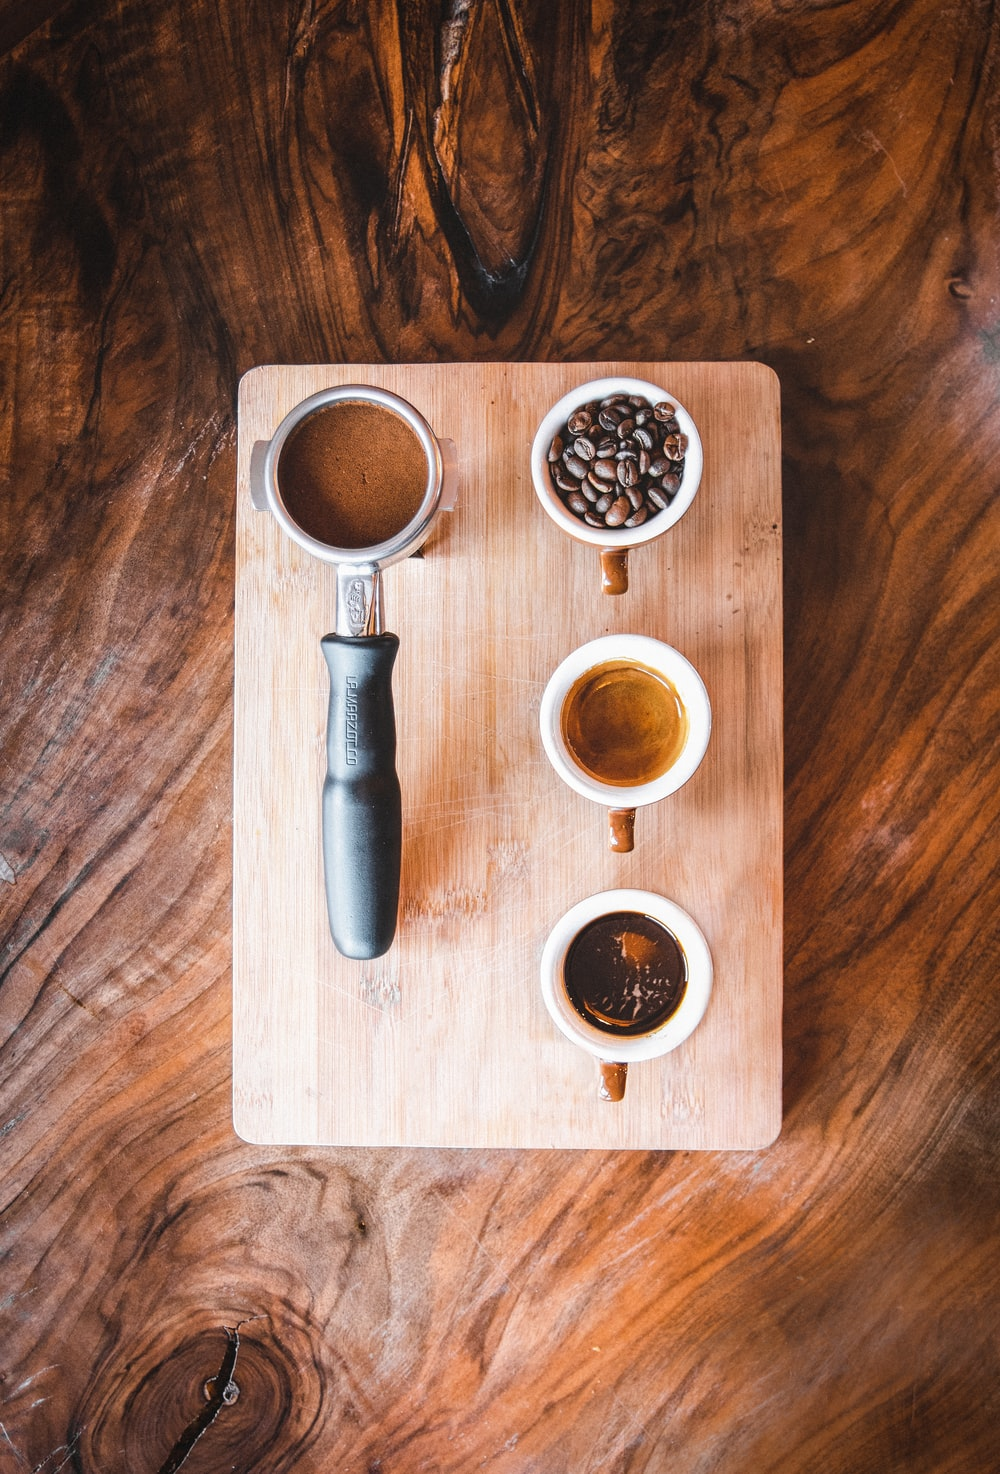 black bottle beside white ceramic mug on brown wooden table